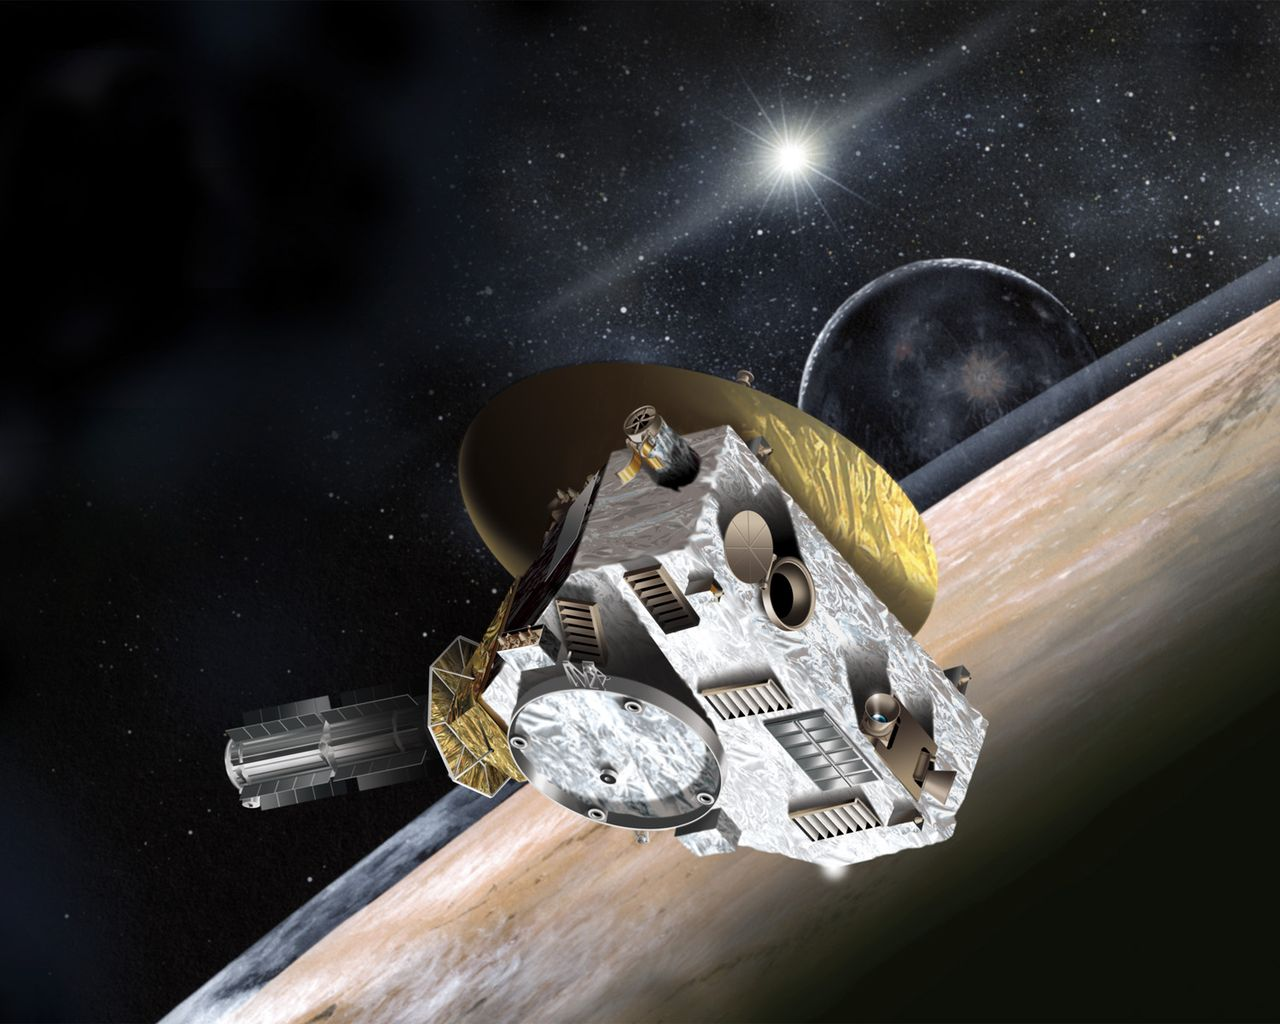 Artist's conception of the New Horizons spacecraft as it encounters Pluto